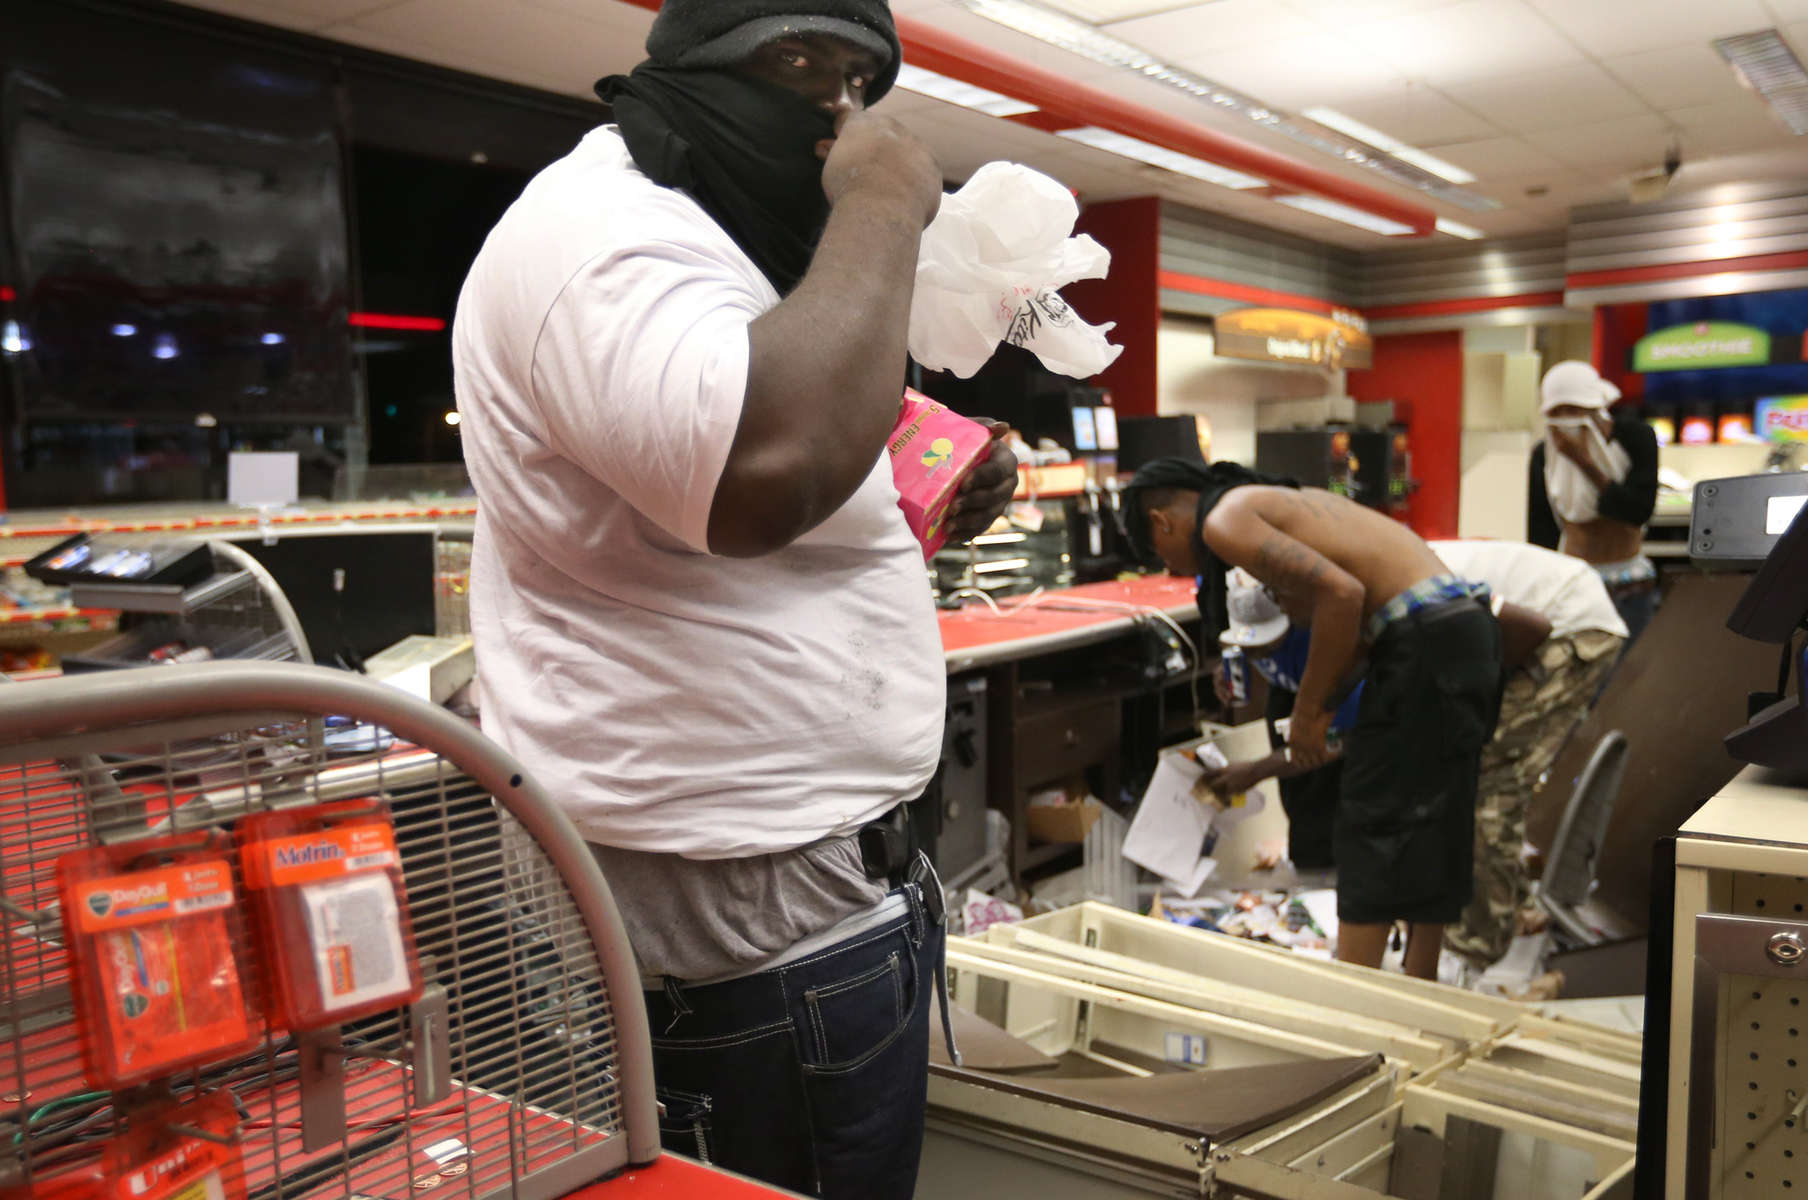 A looter armed with a gun takes items inside the QuikTrip in 9400 block of W. Florissant Avenue in Ferguson, Mo. on Sunday, Aug. 10, 2014.  Rioters set fire to the store about an hour later.